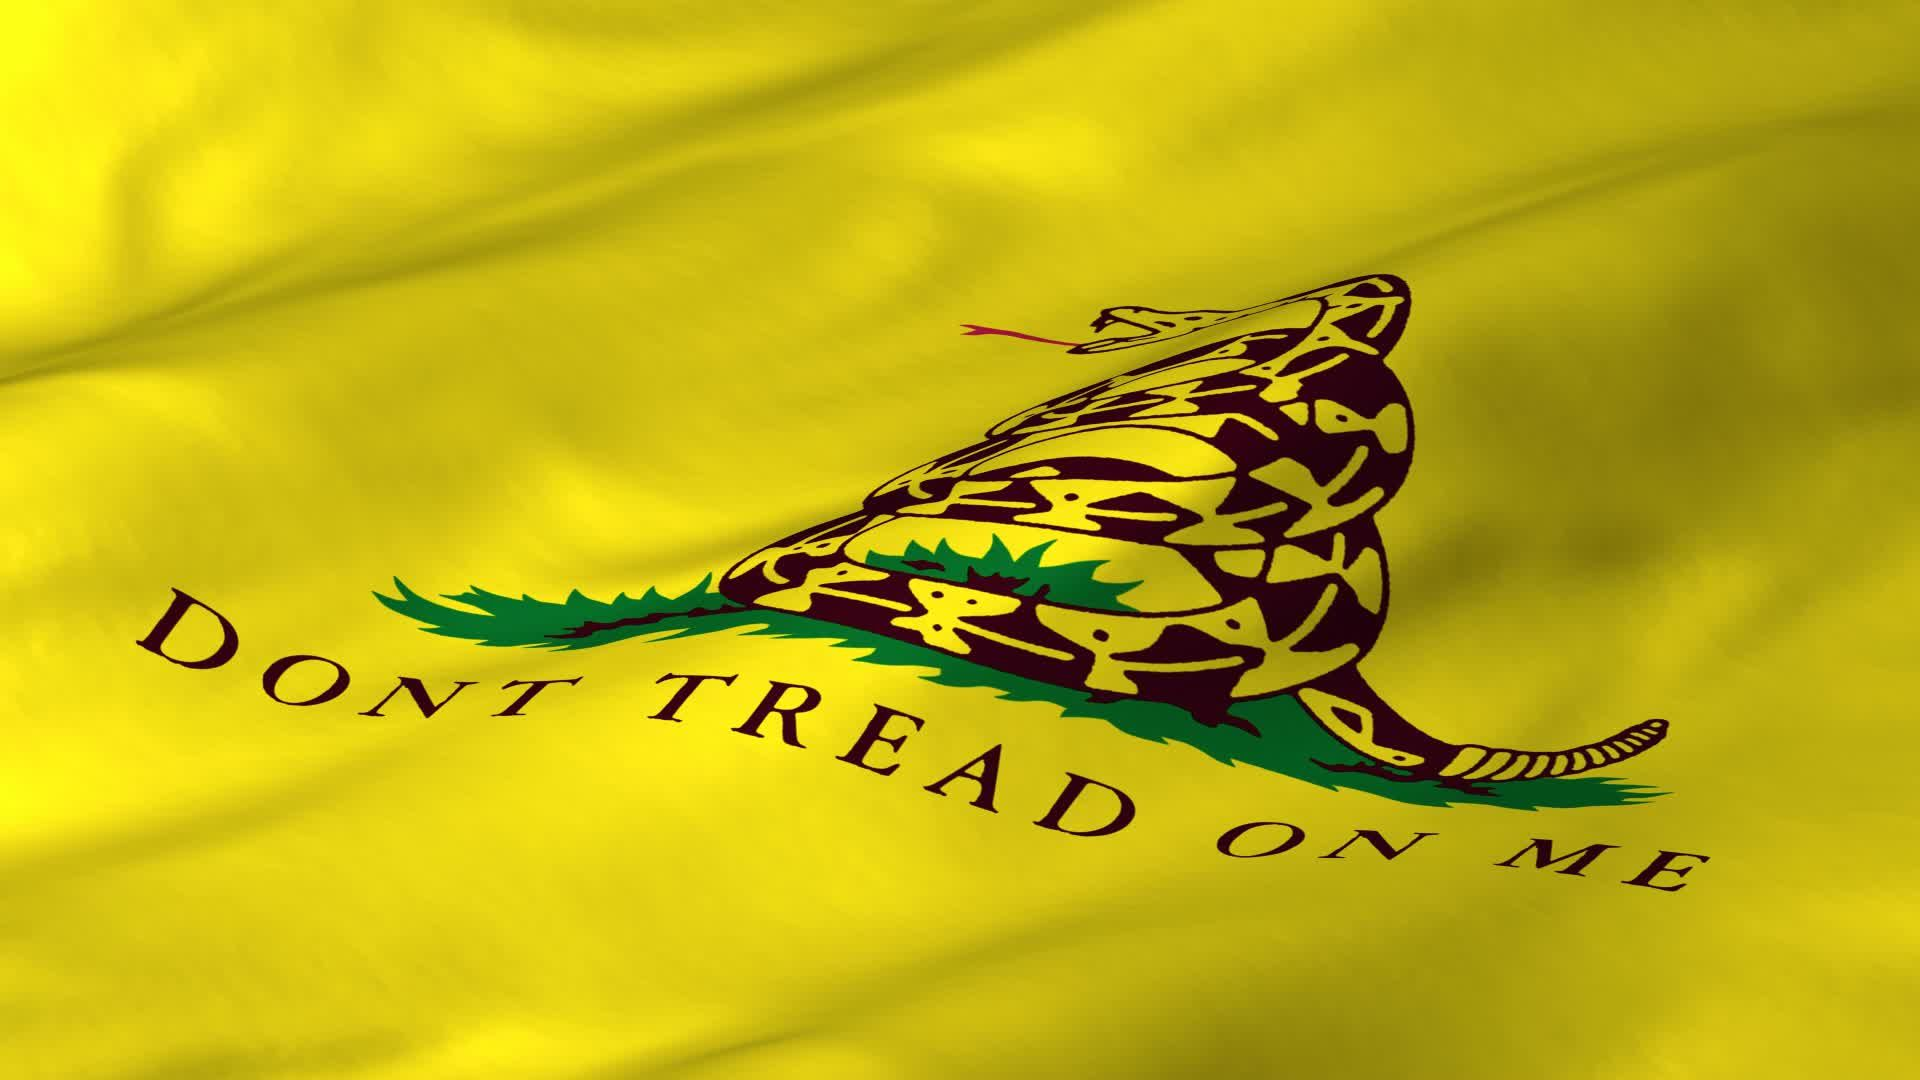 Gadsden Flag Wallpaper 1024x768 Dont Tread On Me Wallpapers 32